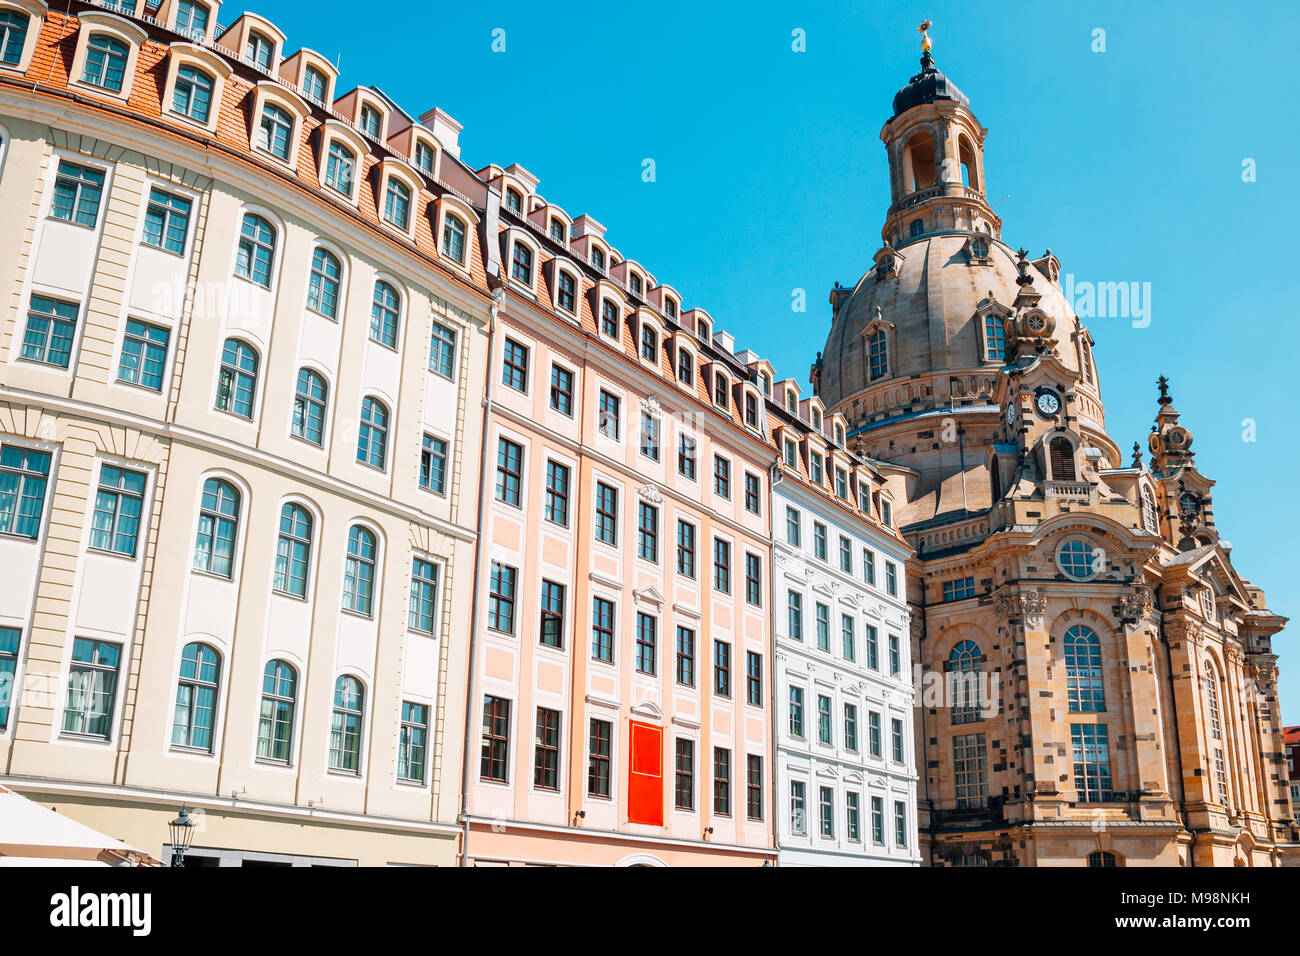 Frauenkirche church and european buildings in Dresden, Germany Stock Photo